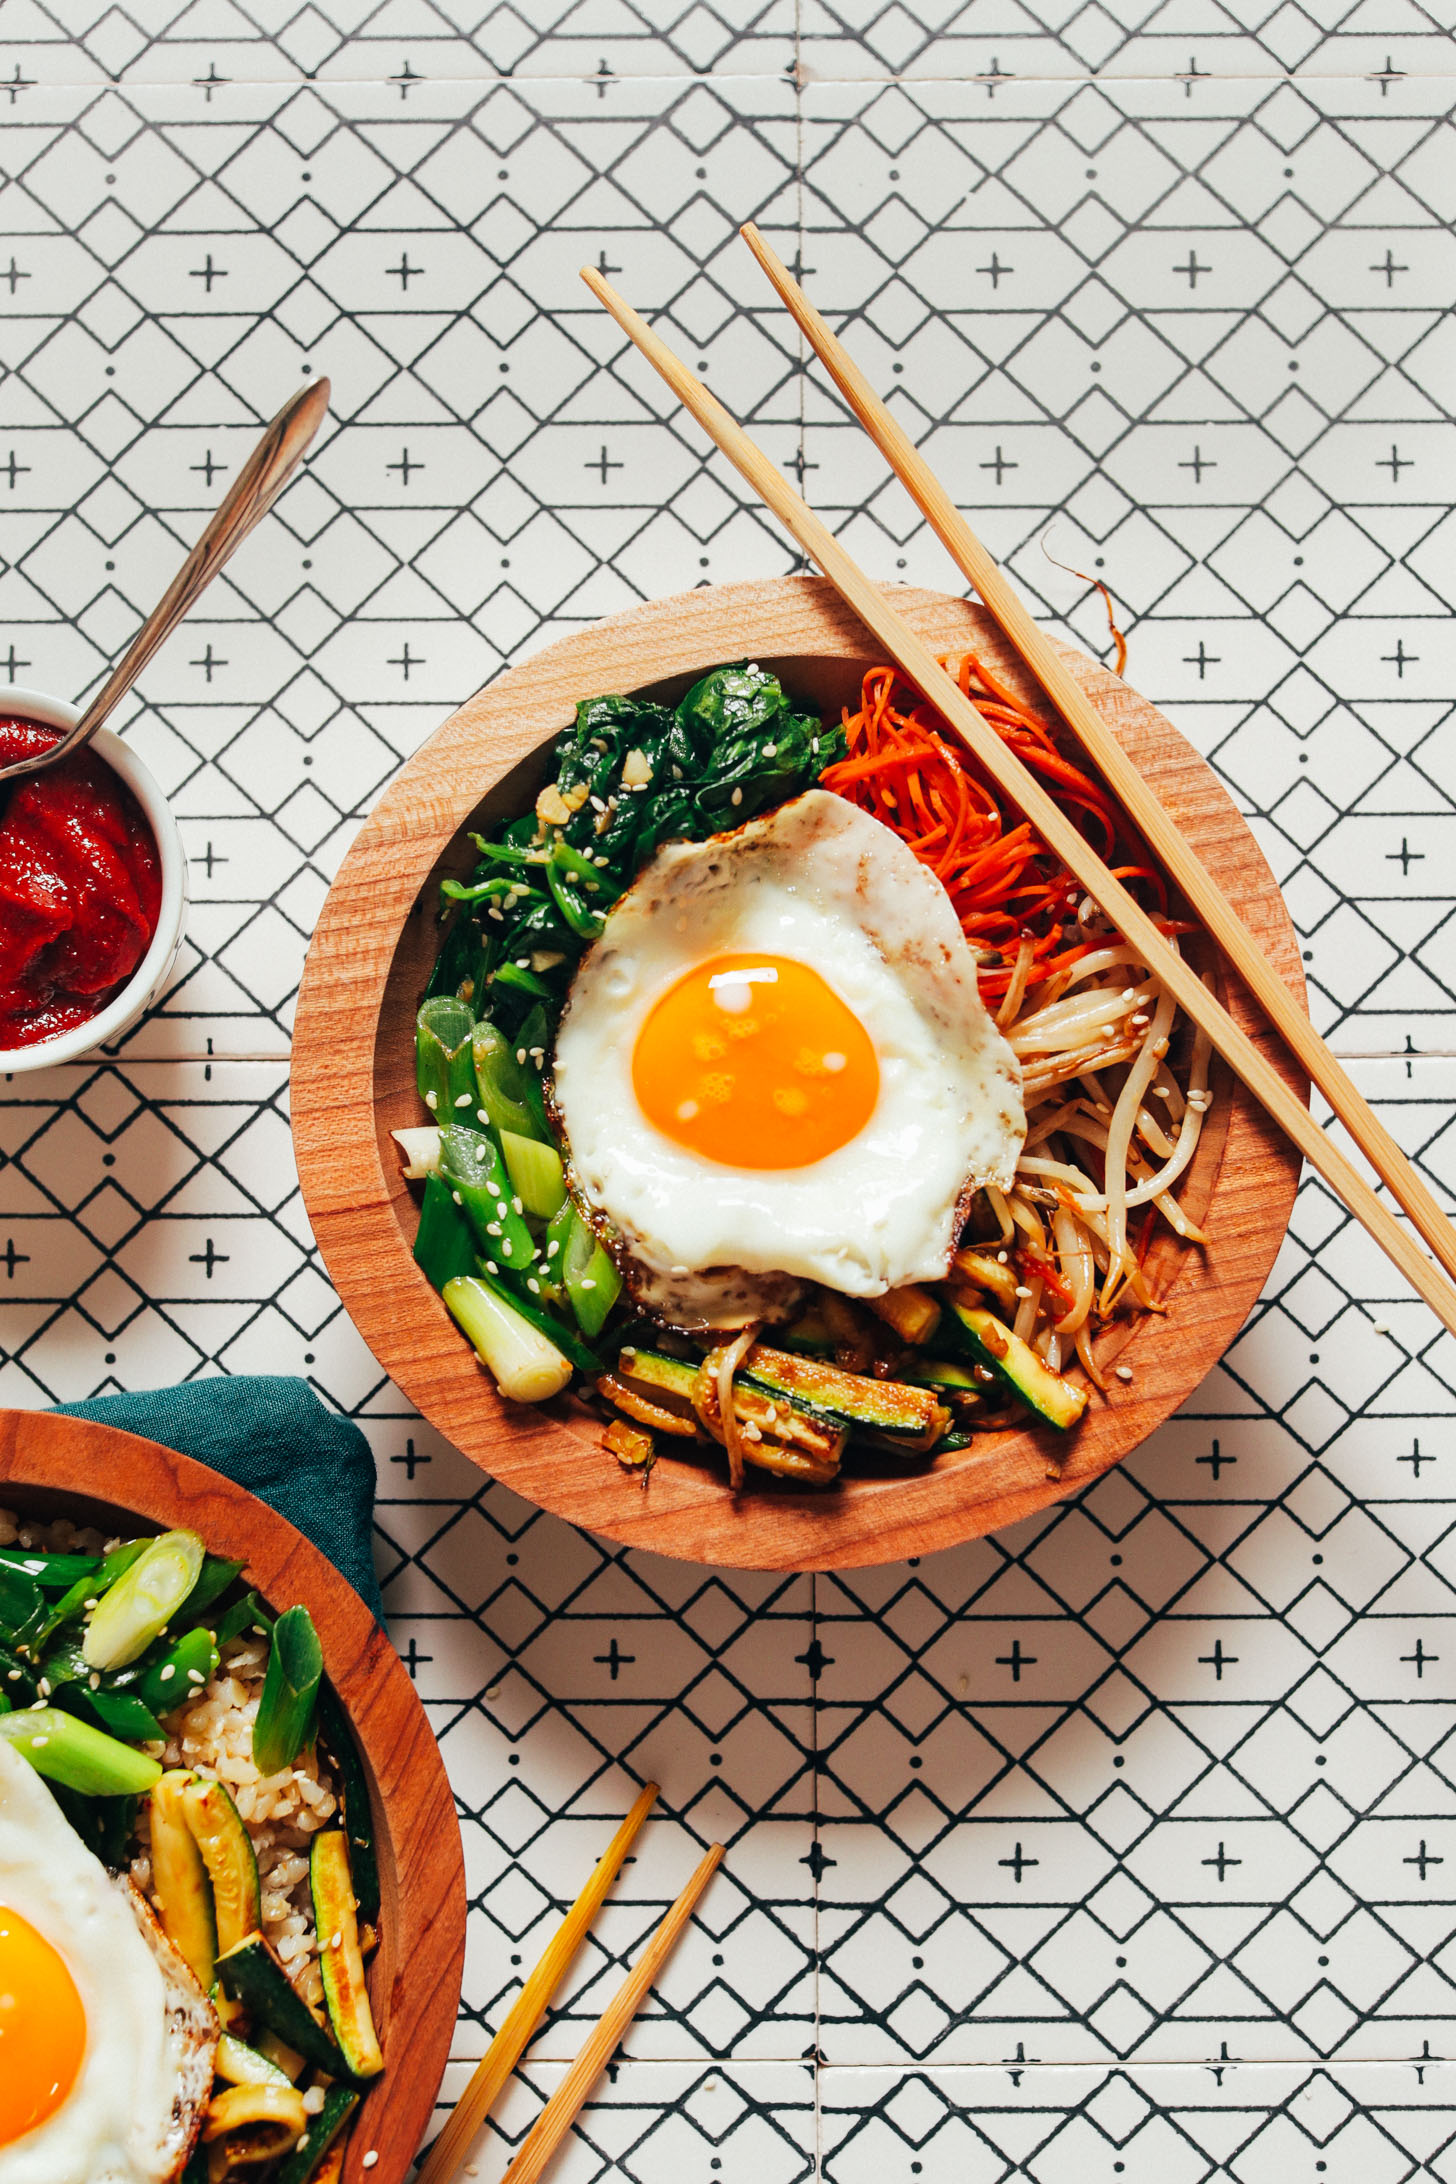 Chopsticks resting on and beside bowls of homemade Korean Bibimbap with fried eggs